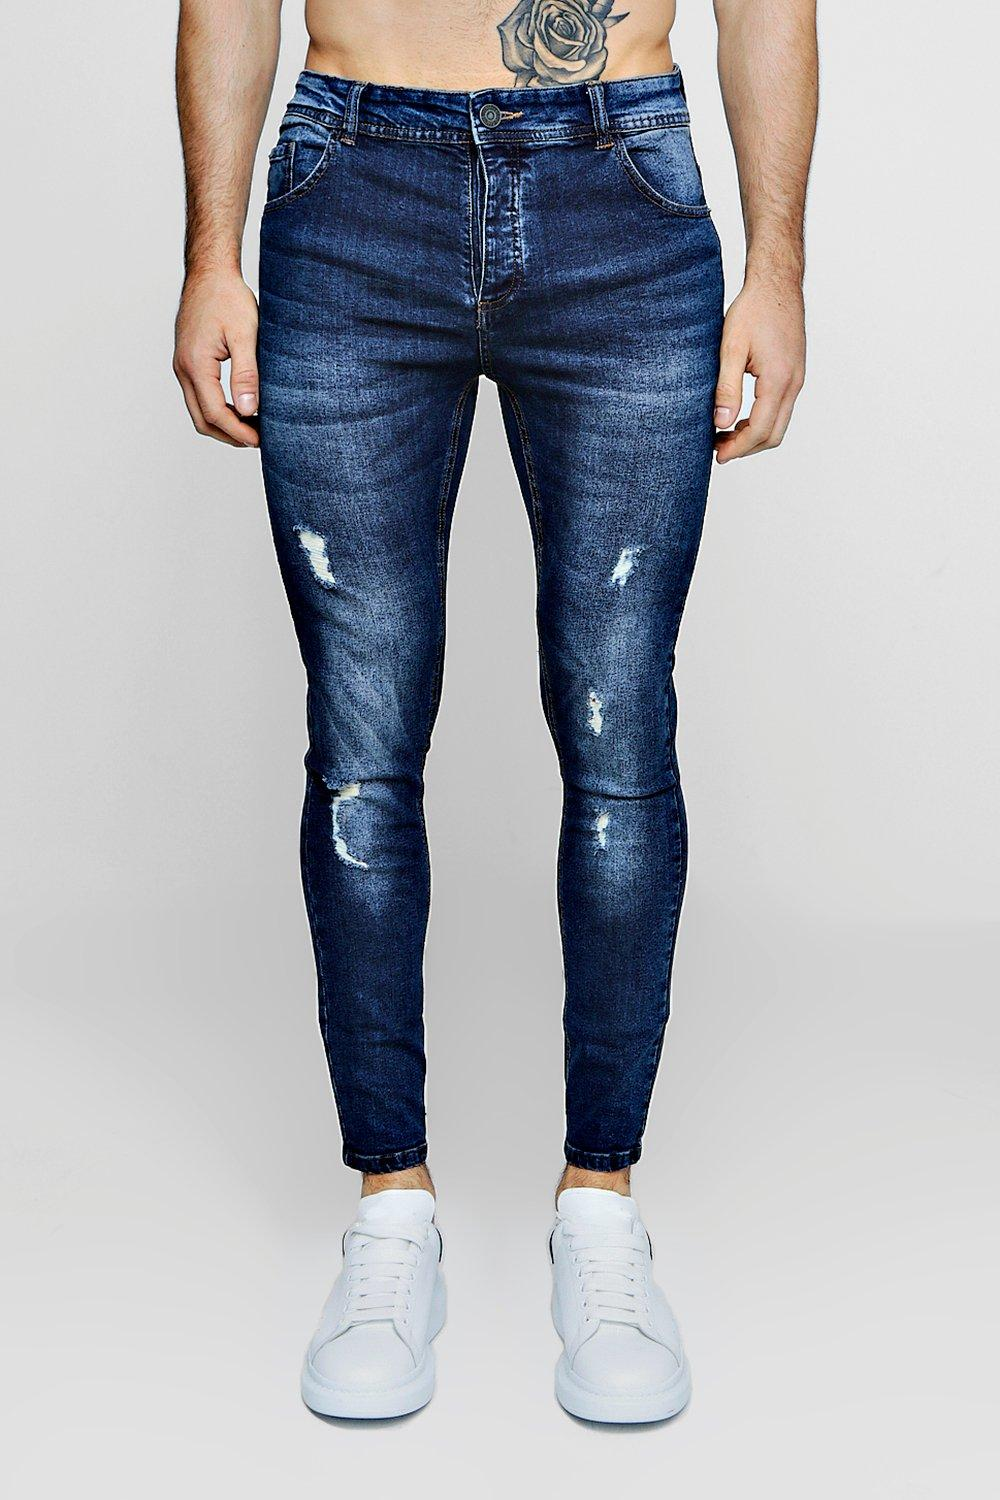 Fit Skinny blue mid With Light Distressing Jeans 1ddqU